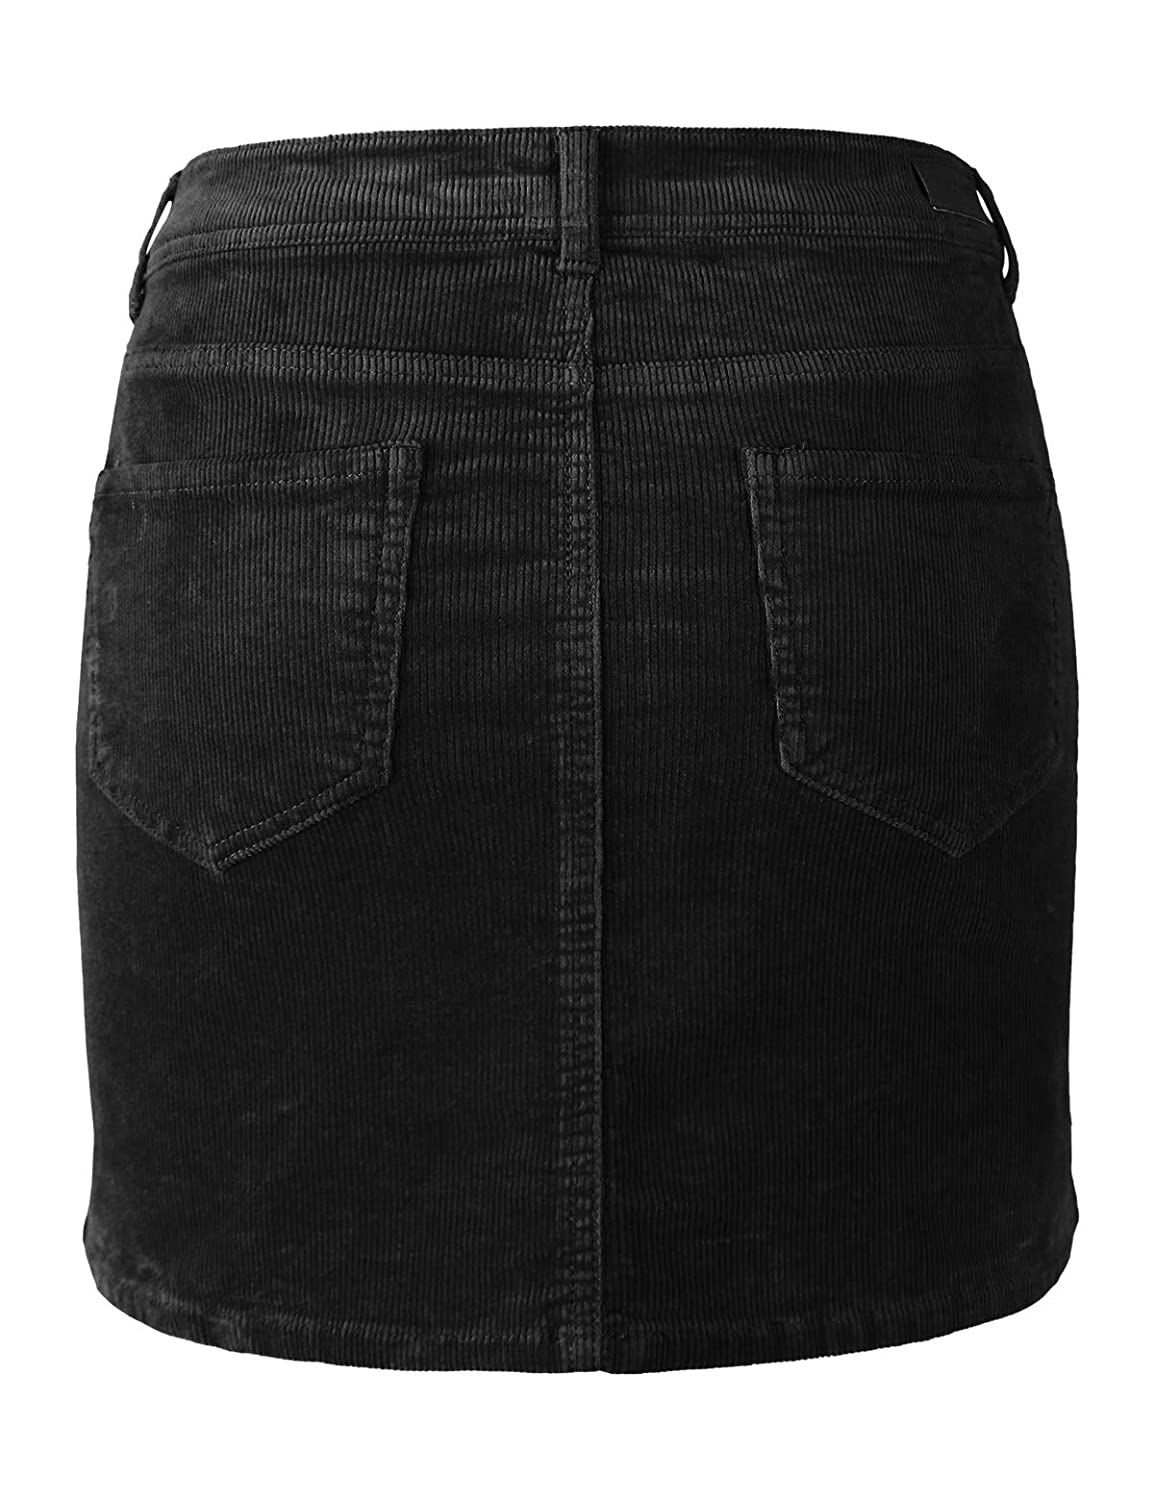 9634dbfe9f6cf6 makeitmint Women's Classic Casual Corduroy Mini Skirt w/Pockets [4 Colors]  at Amazon Women's Clothing store: